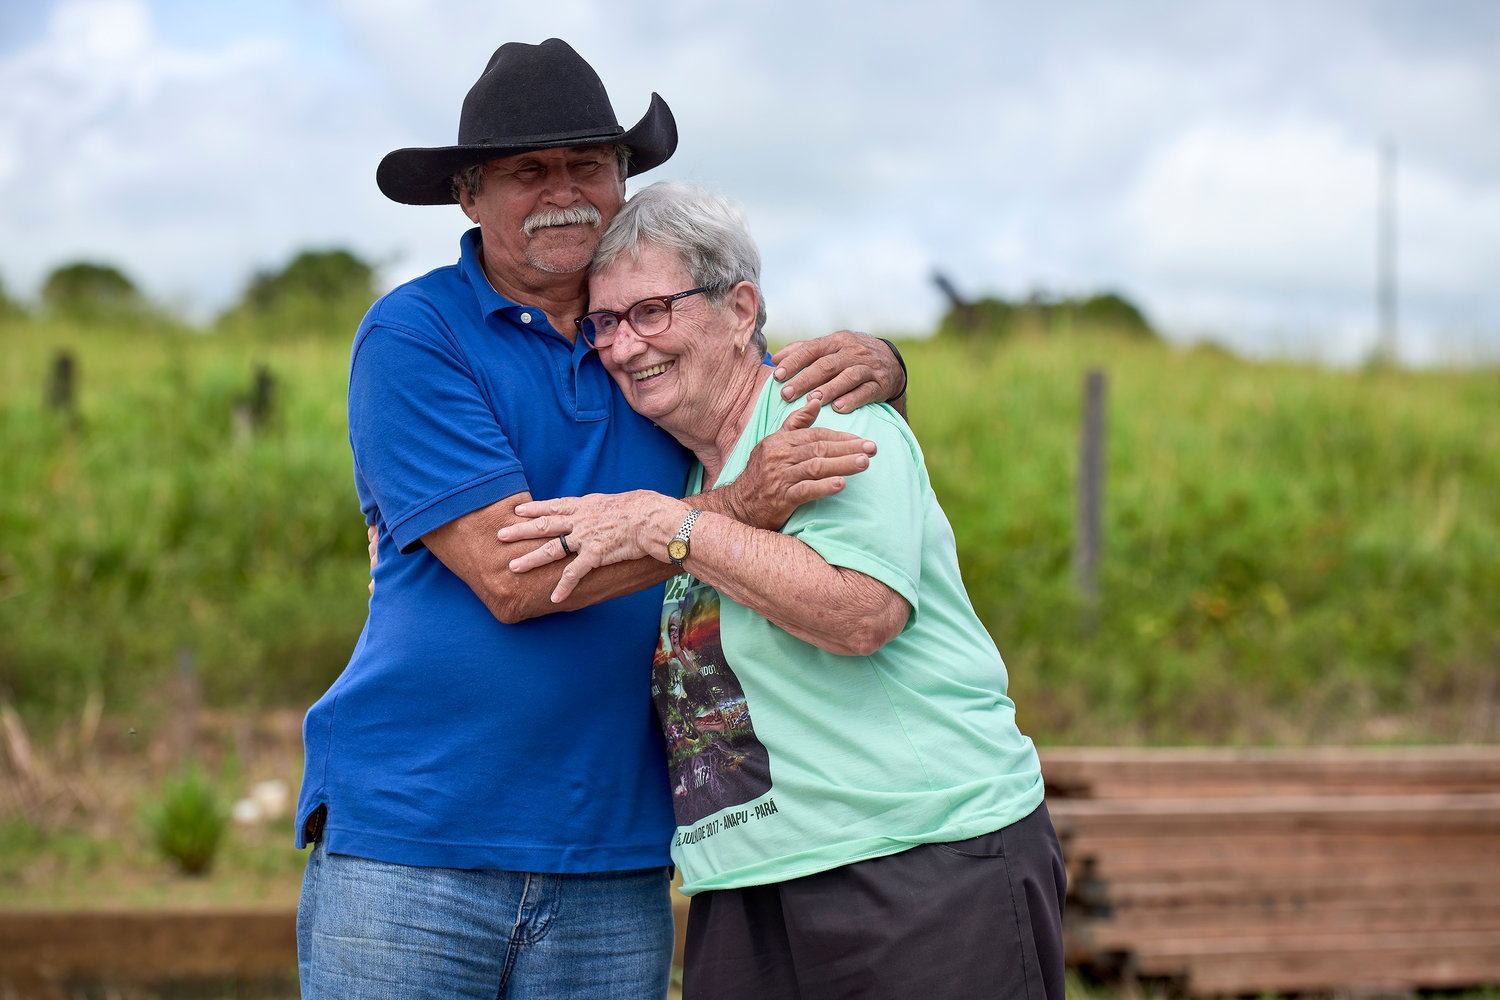 Sister Jane Dwyer, a U.S. member of the Sisters of Notre Dame de Namur, hugs a farmer after a meeting in the countryside near Anapu, in Brazil's northern Para state.